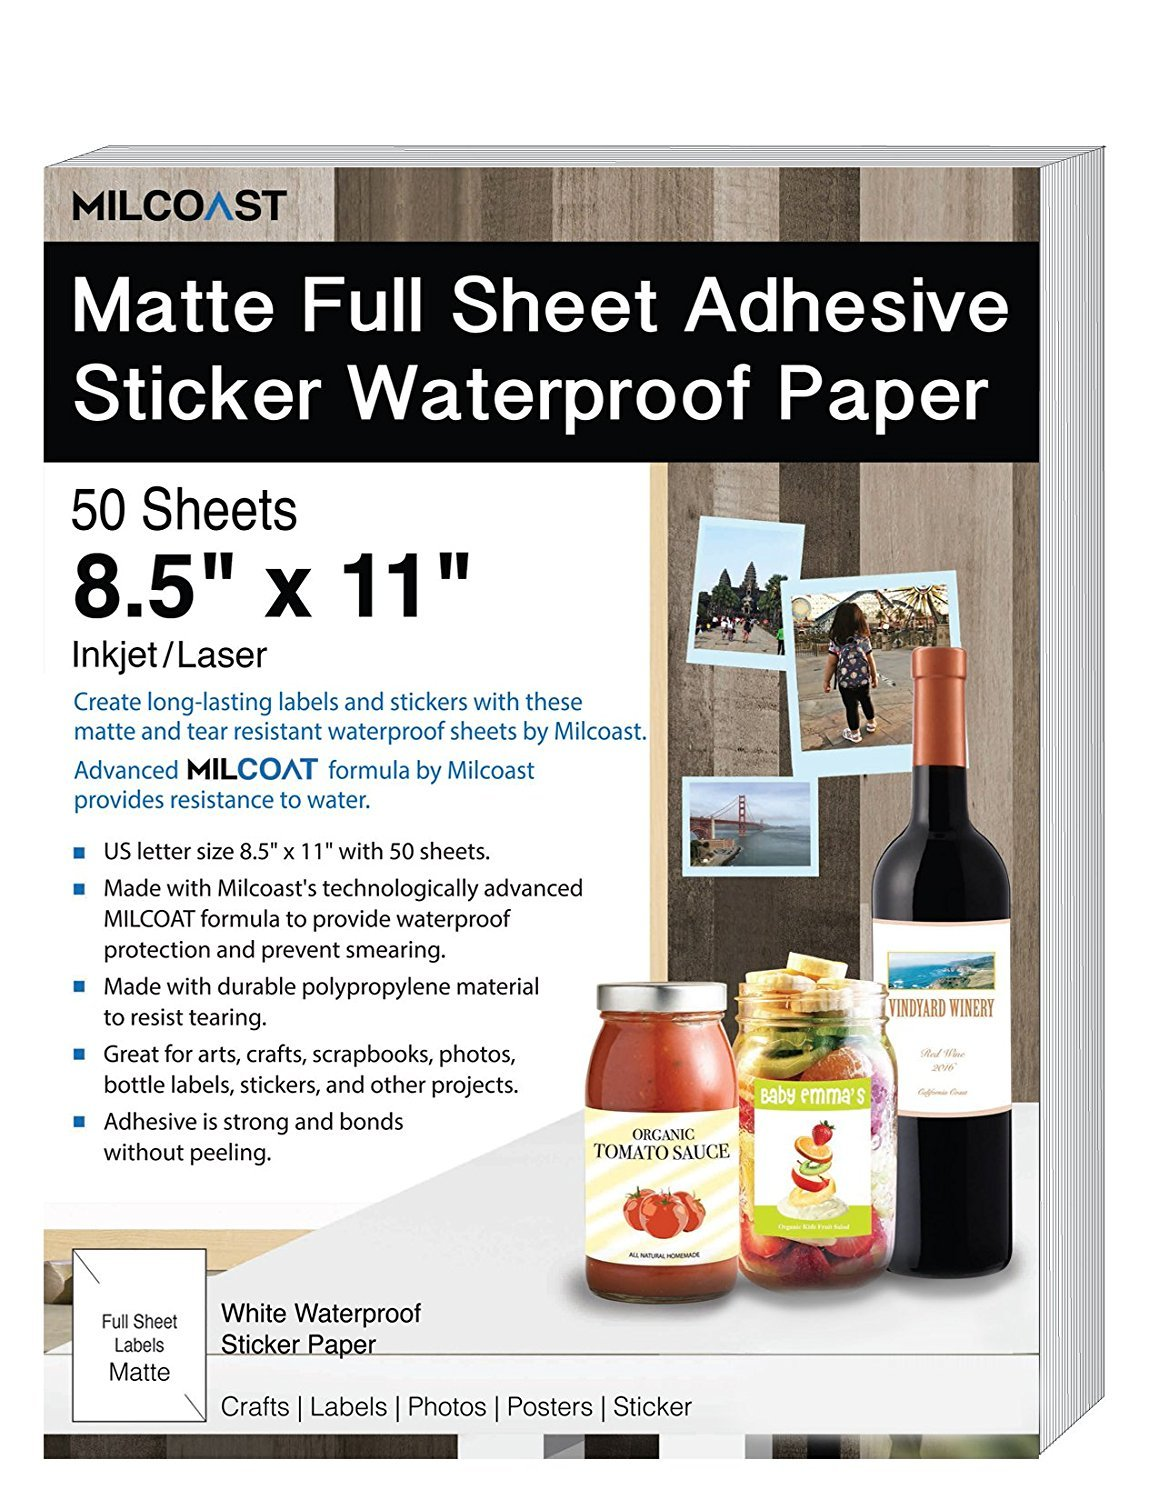 Sticky paper for crafts - Amazon Com Milcoast Matte Full Sheet 8 5 X 11 Adhesive Tear Resistant Waterproof Photo Craft Paper For Inkjet Laser Printers For Stickers Labels